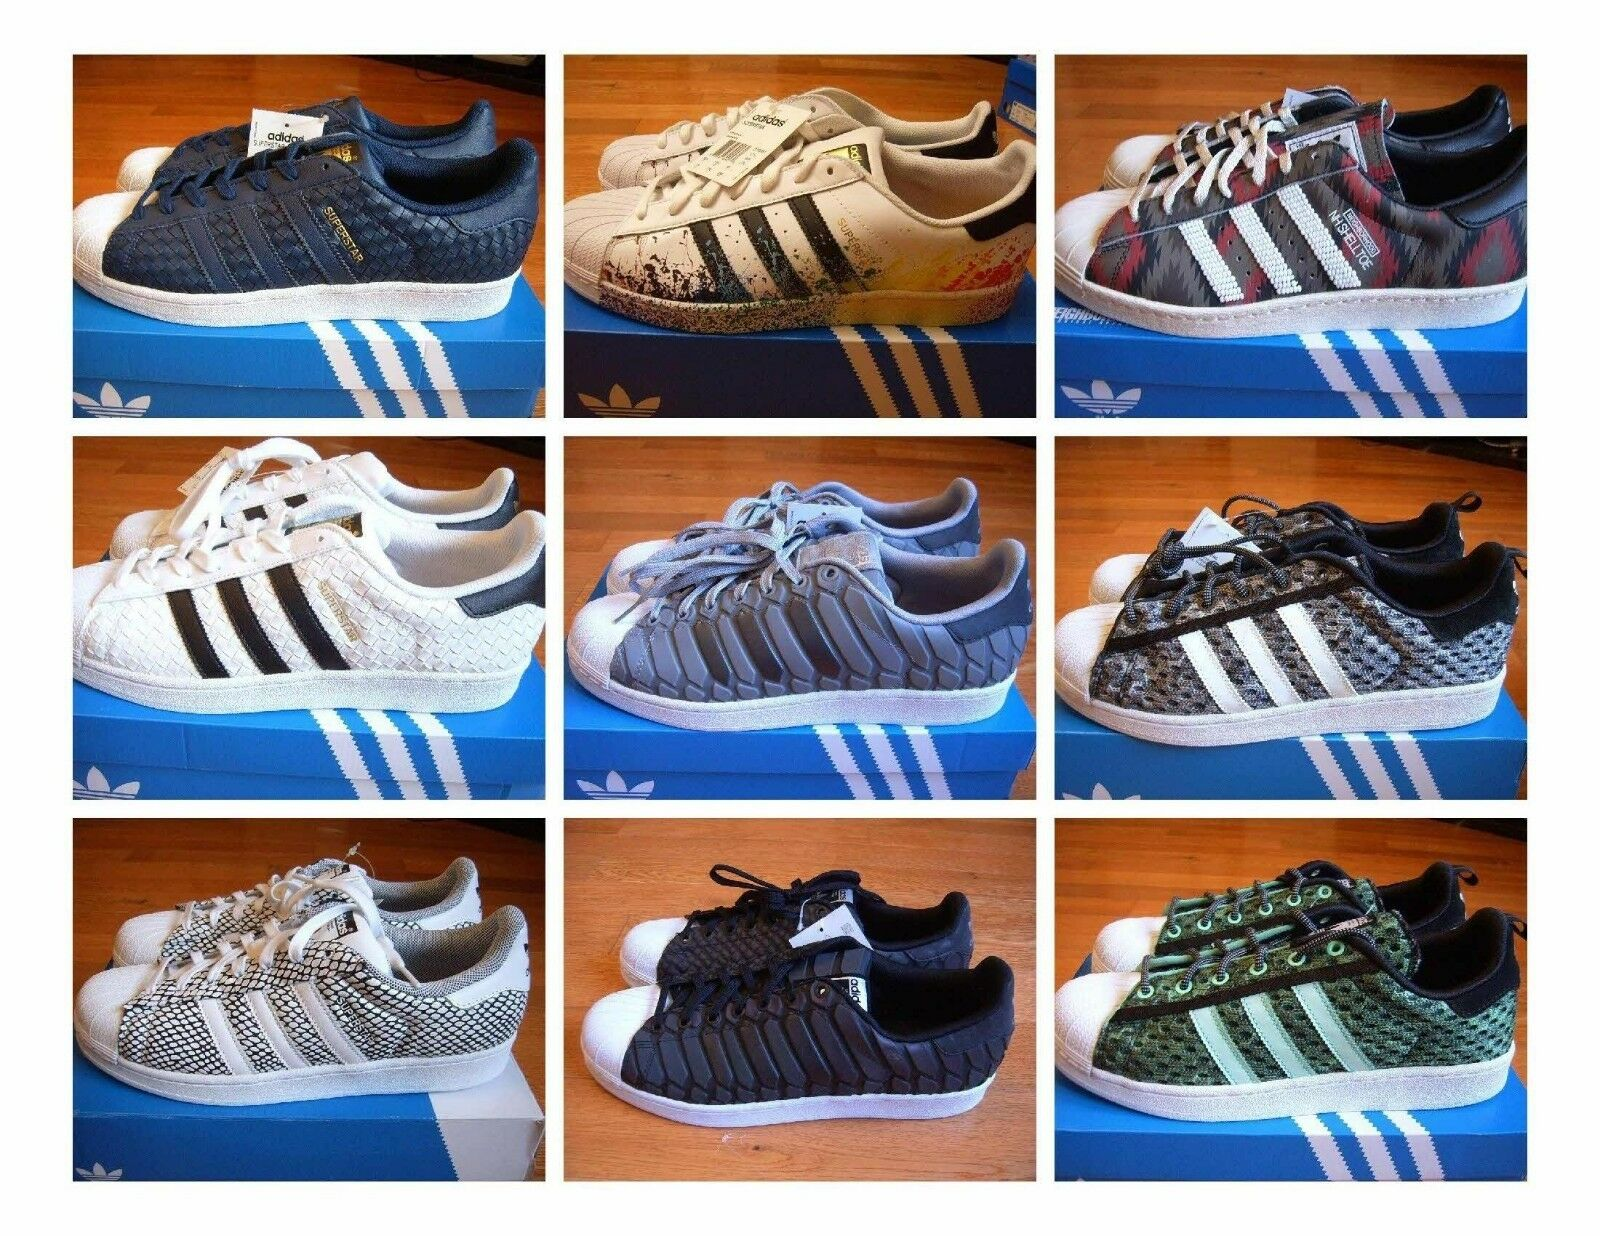 New with Box shoes/sneakers, Adidas Superstar shoes/sneakers, Box Primeknit, Snakeskin, Neighborhood 12b789